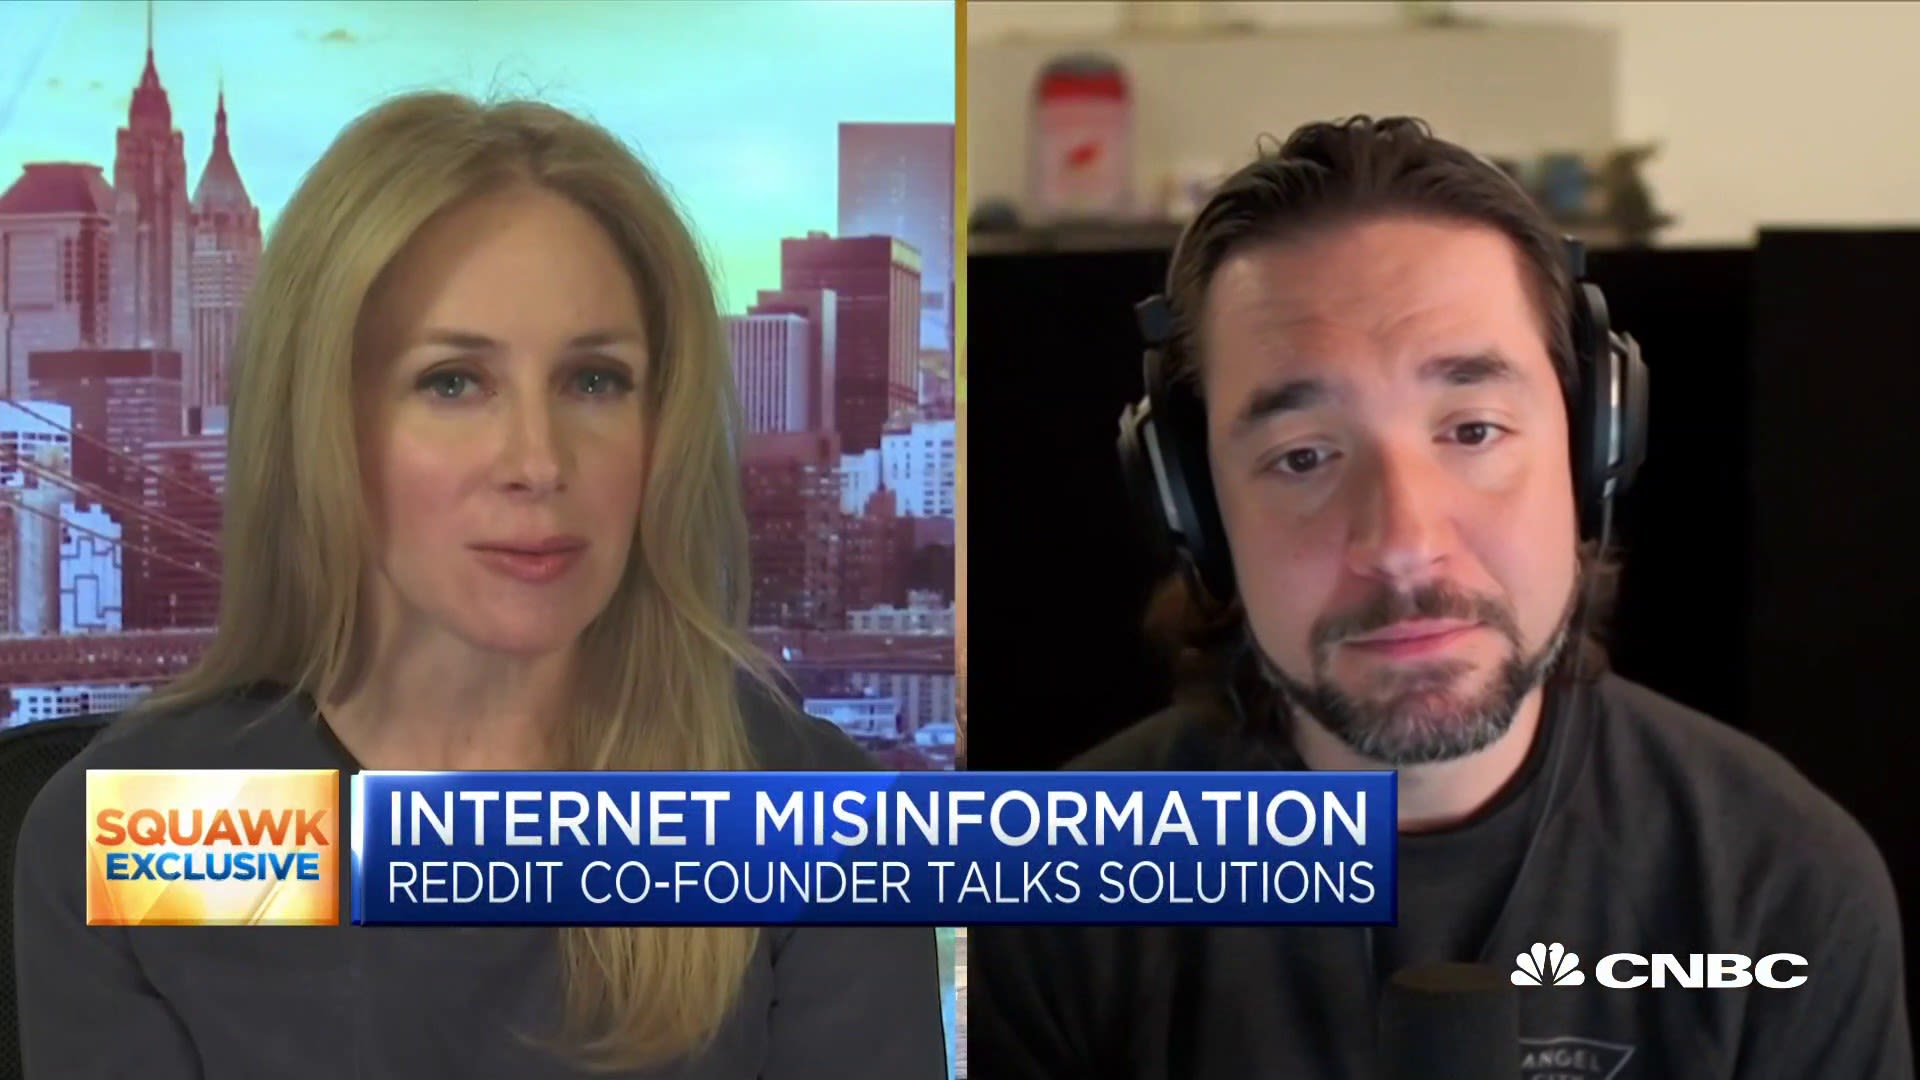 Full interview with Reddit co-founder Alexis Ohanian on the top issues affecting social media